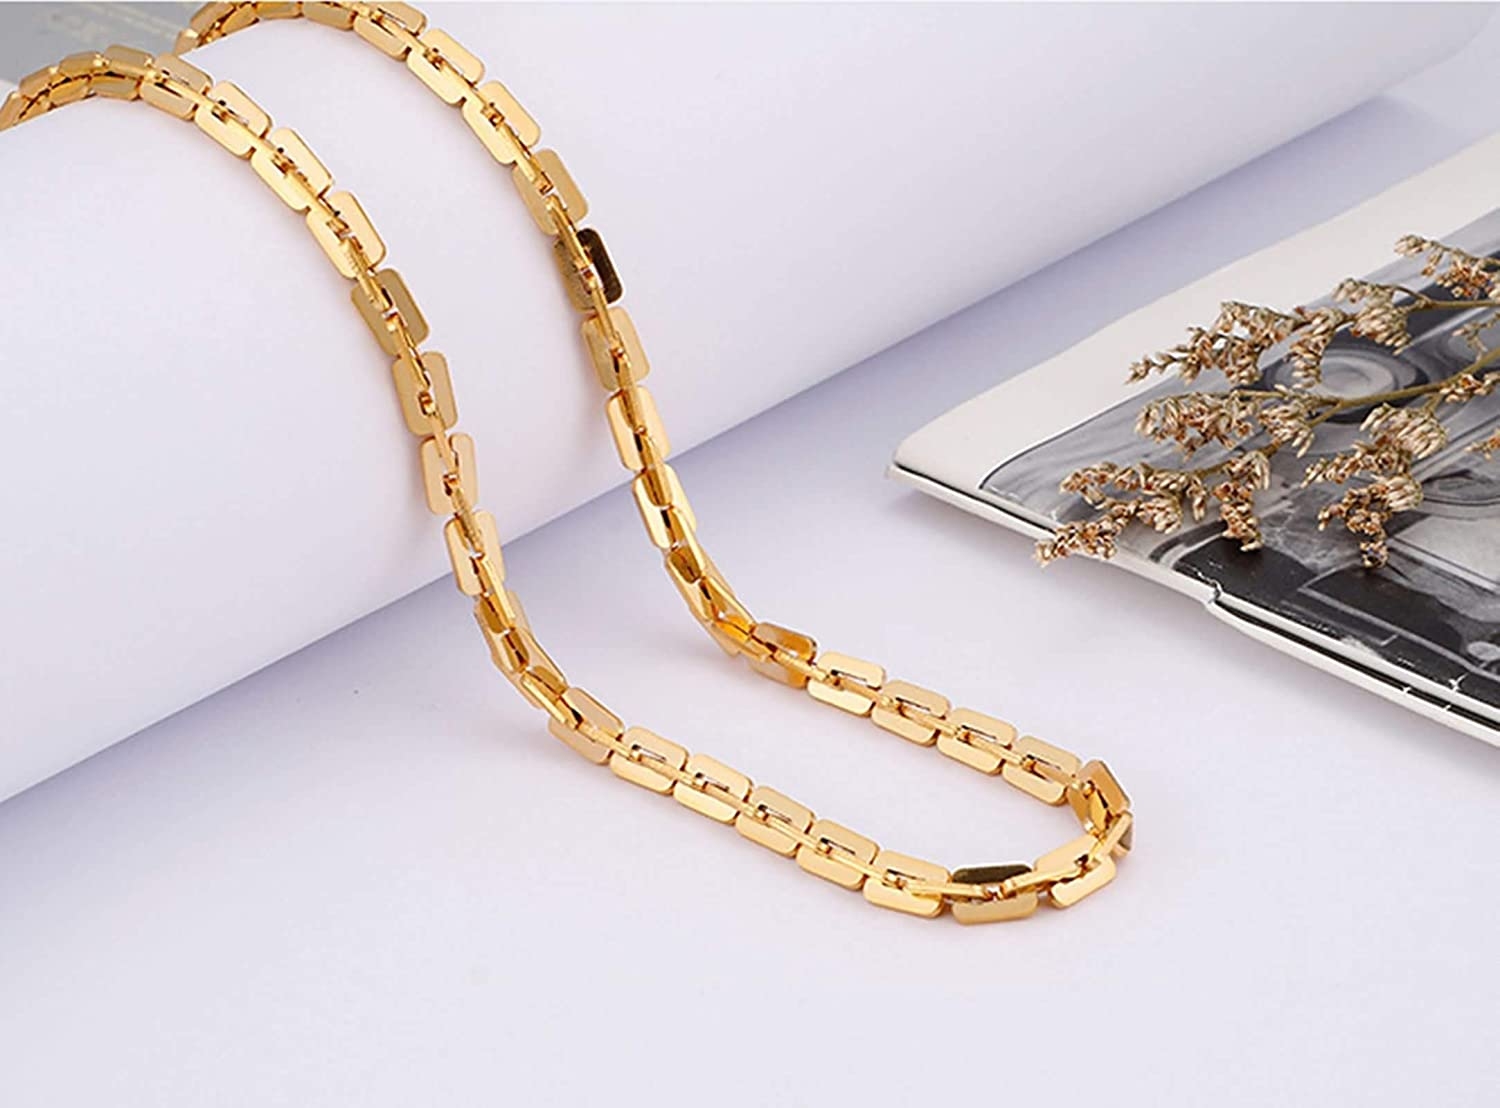 Gnzoe Stainless Steel Necklace Punk Biker Jewelry Oval Curb Chain Necklaces